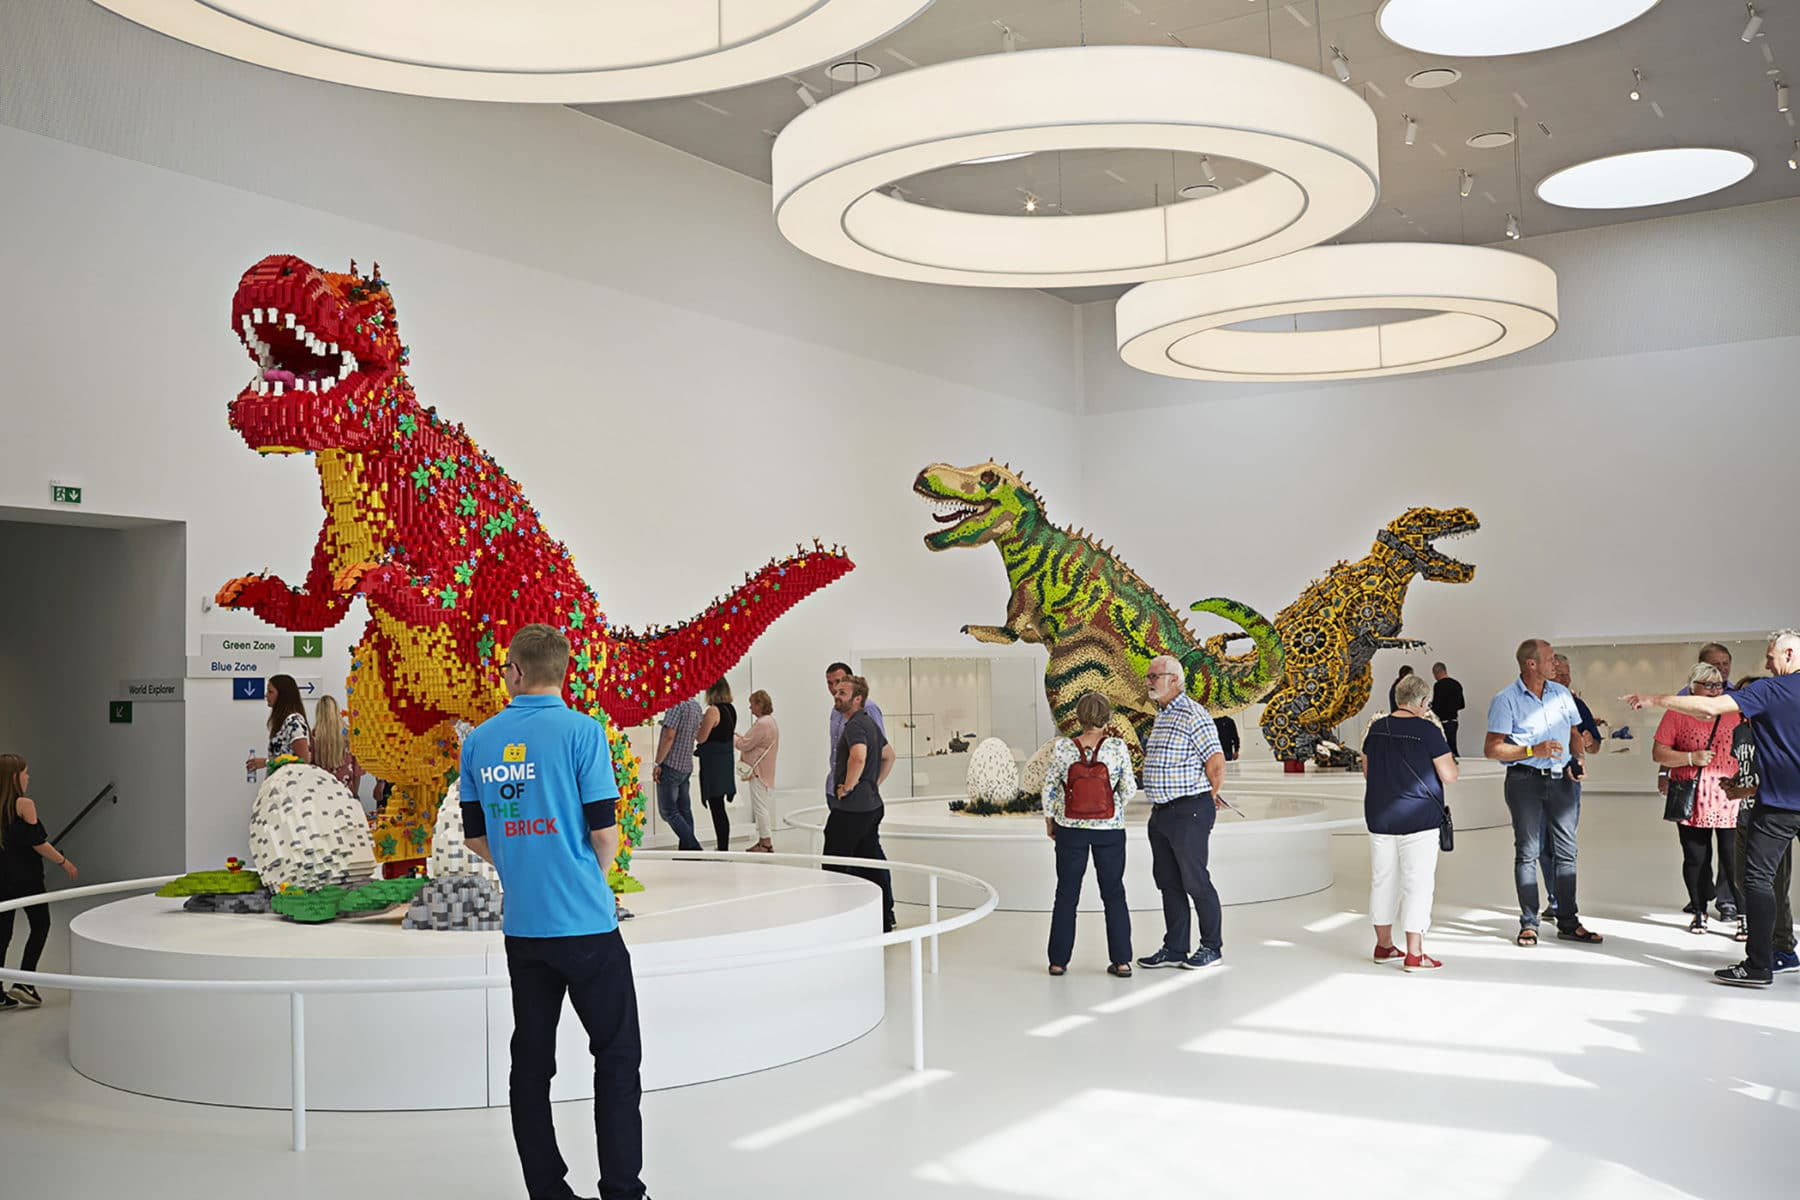 LEGO House Dinosaurier in der Masterpiece Gallery